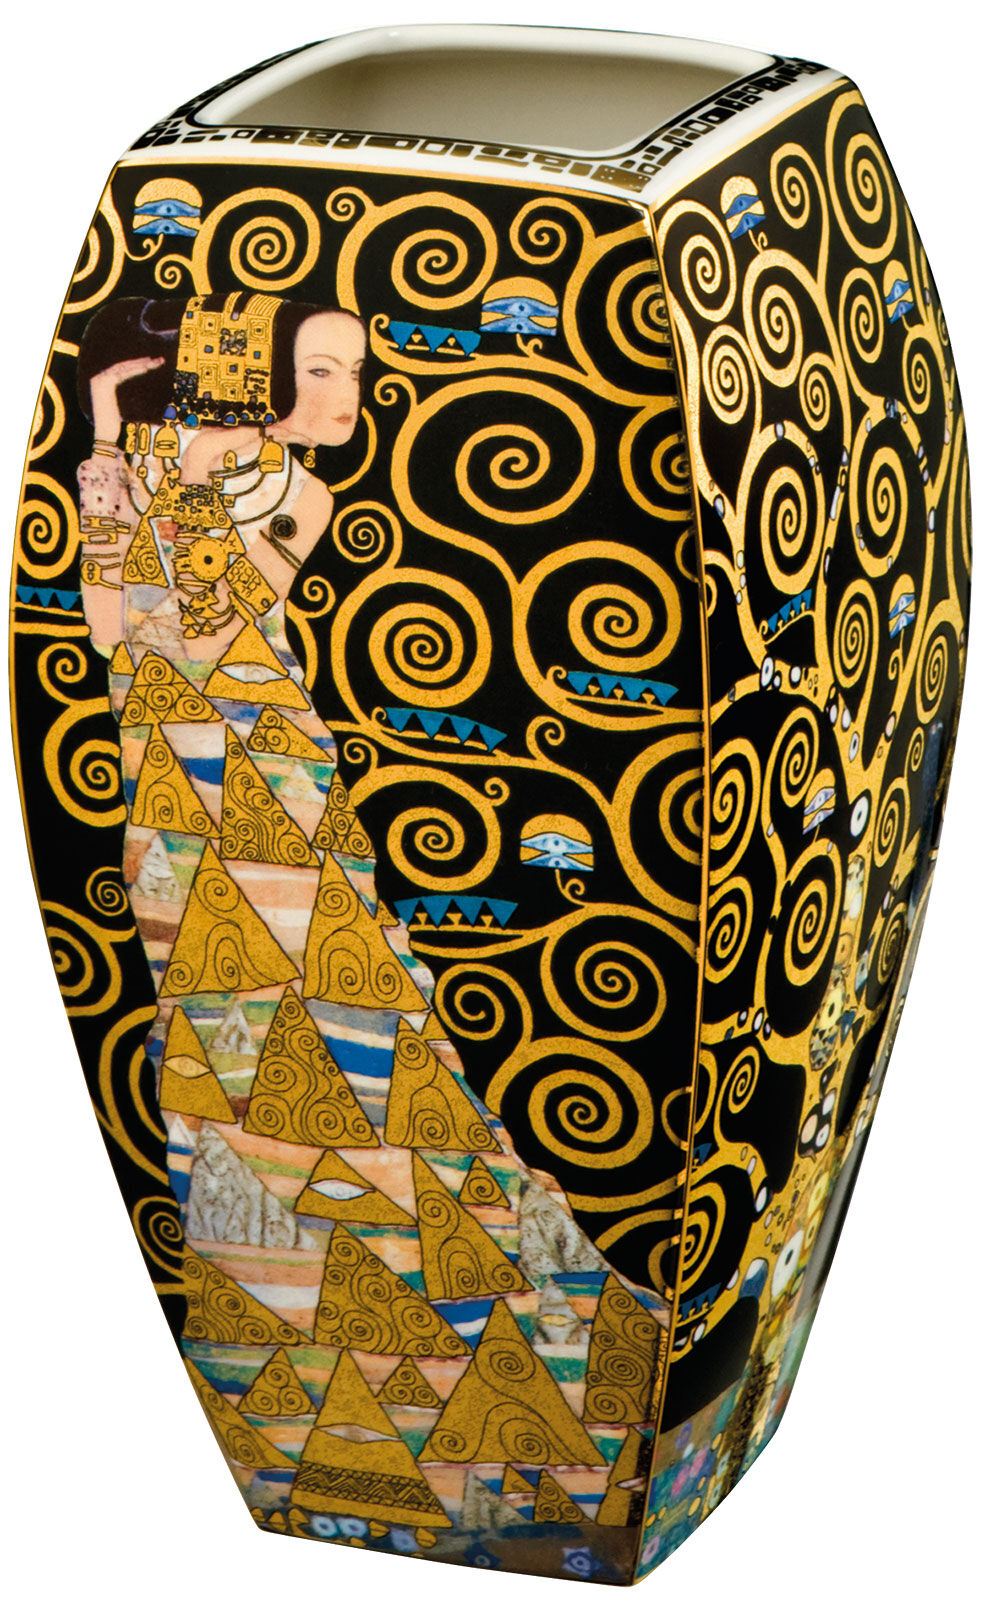 gustav klimt porzellanvase lebensbaum mit gold platindekor ars mundi. Black Bedroom Furniture Sets. Home Design Ideas